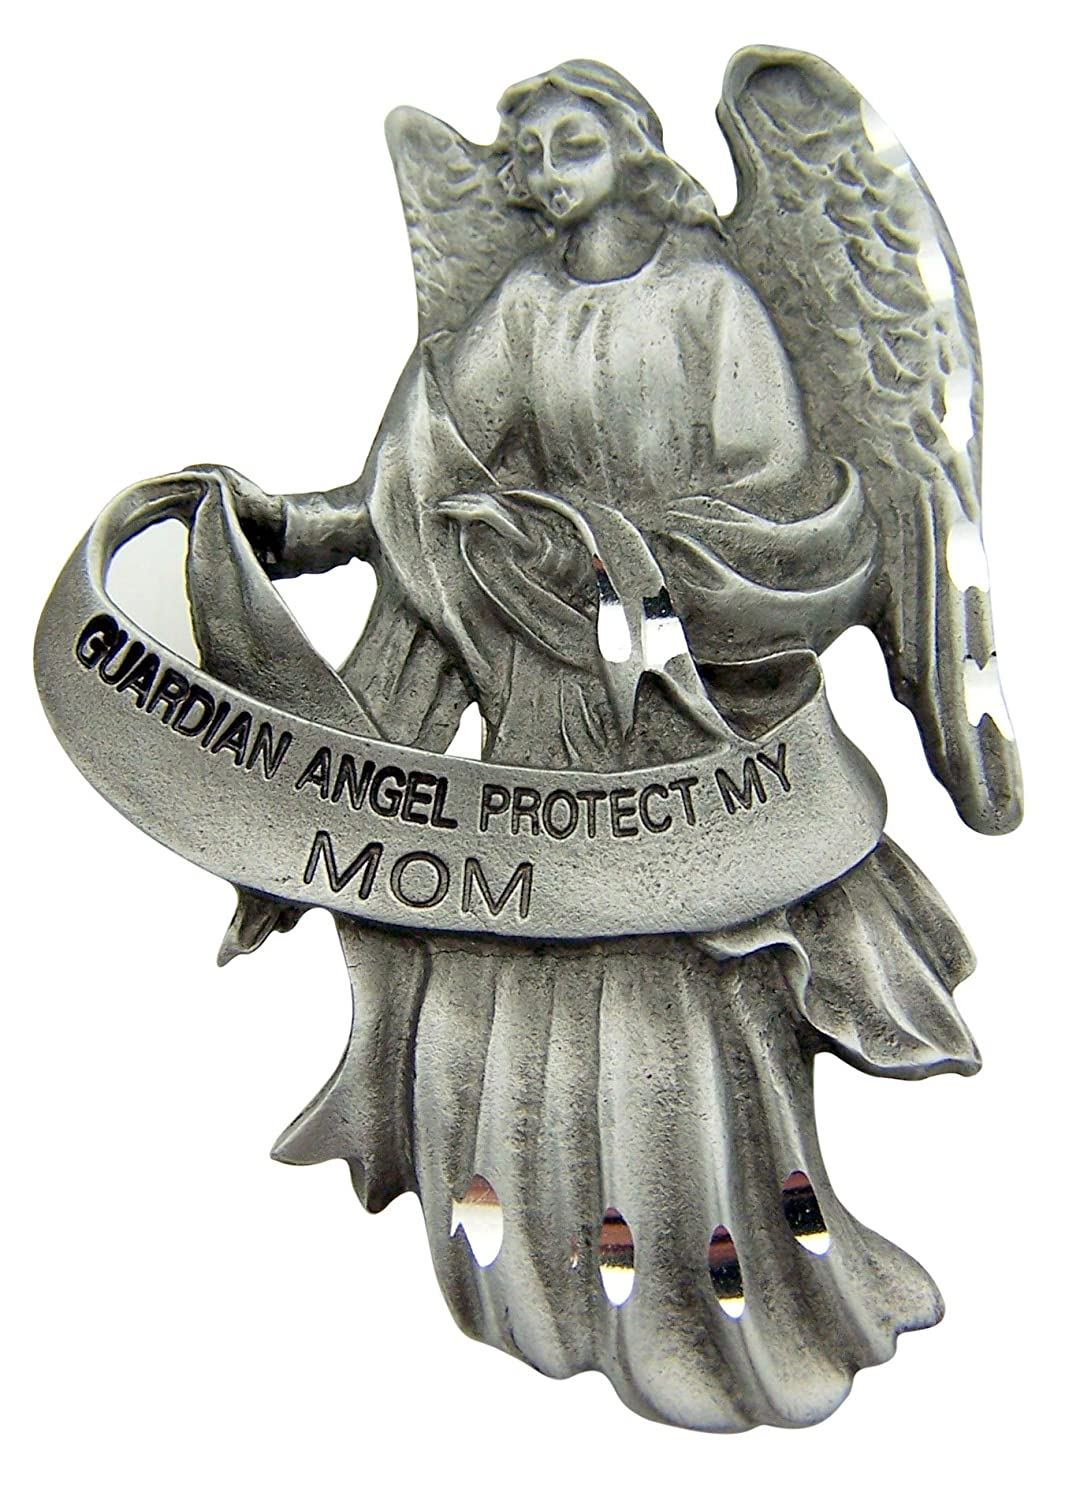 Religious Mother's Day Gift 2 1/2″ Antique Finish Pewter Guardian Angel Protect My Mom Auto Car Visor Clip Travel Protection